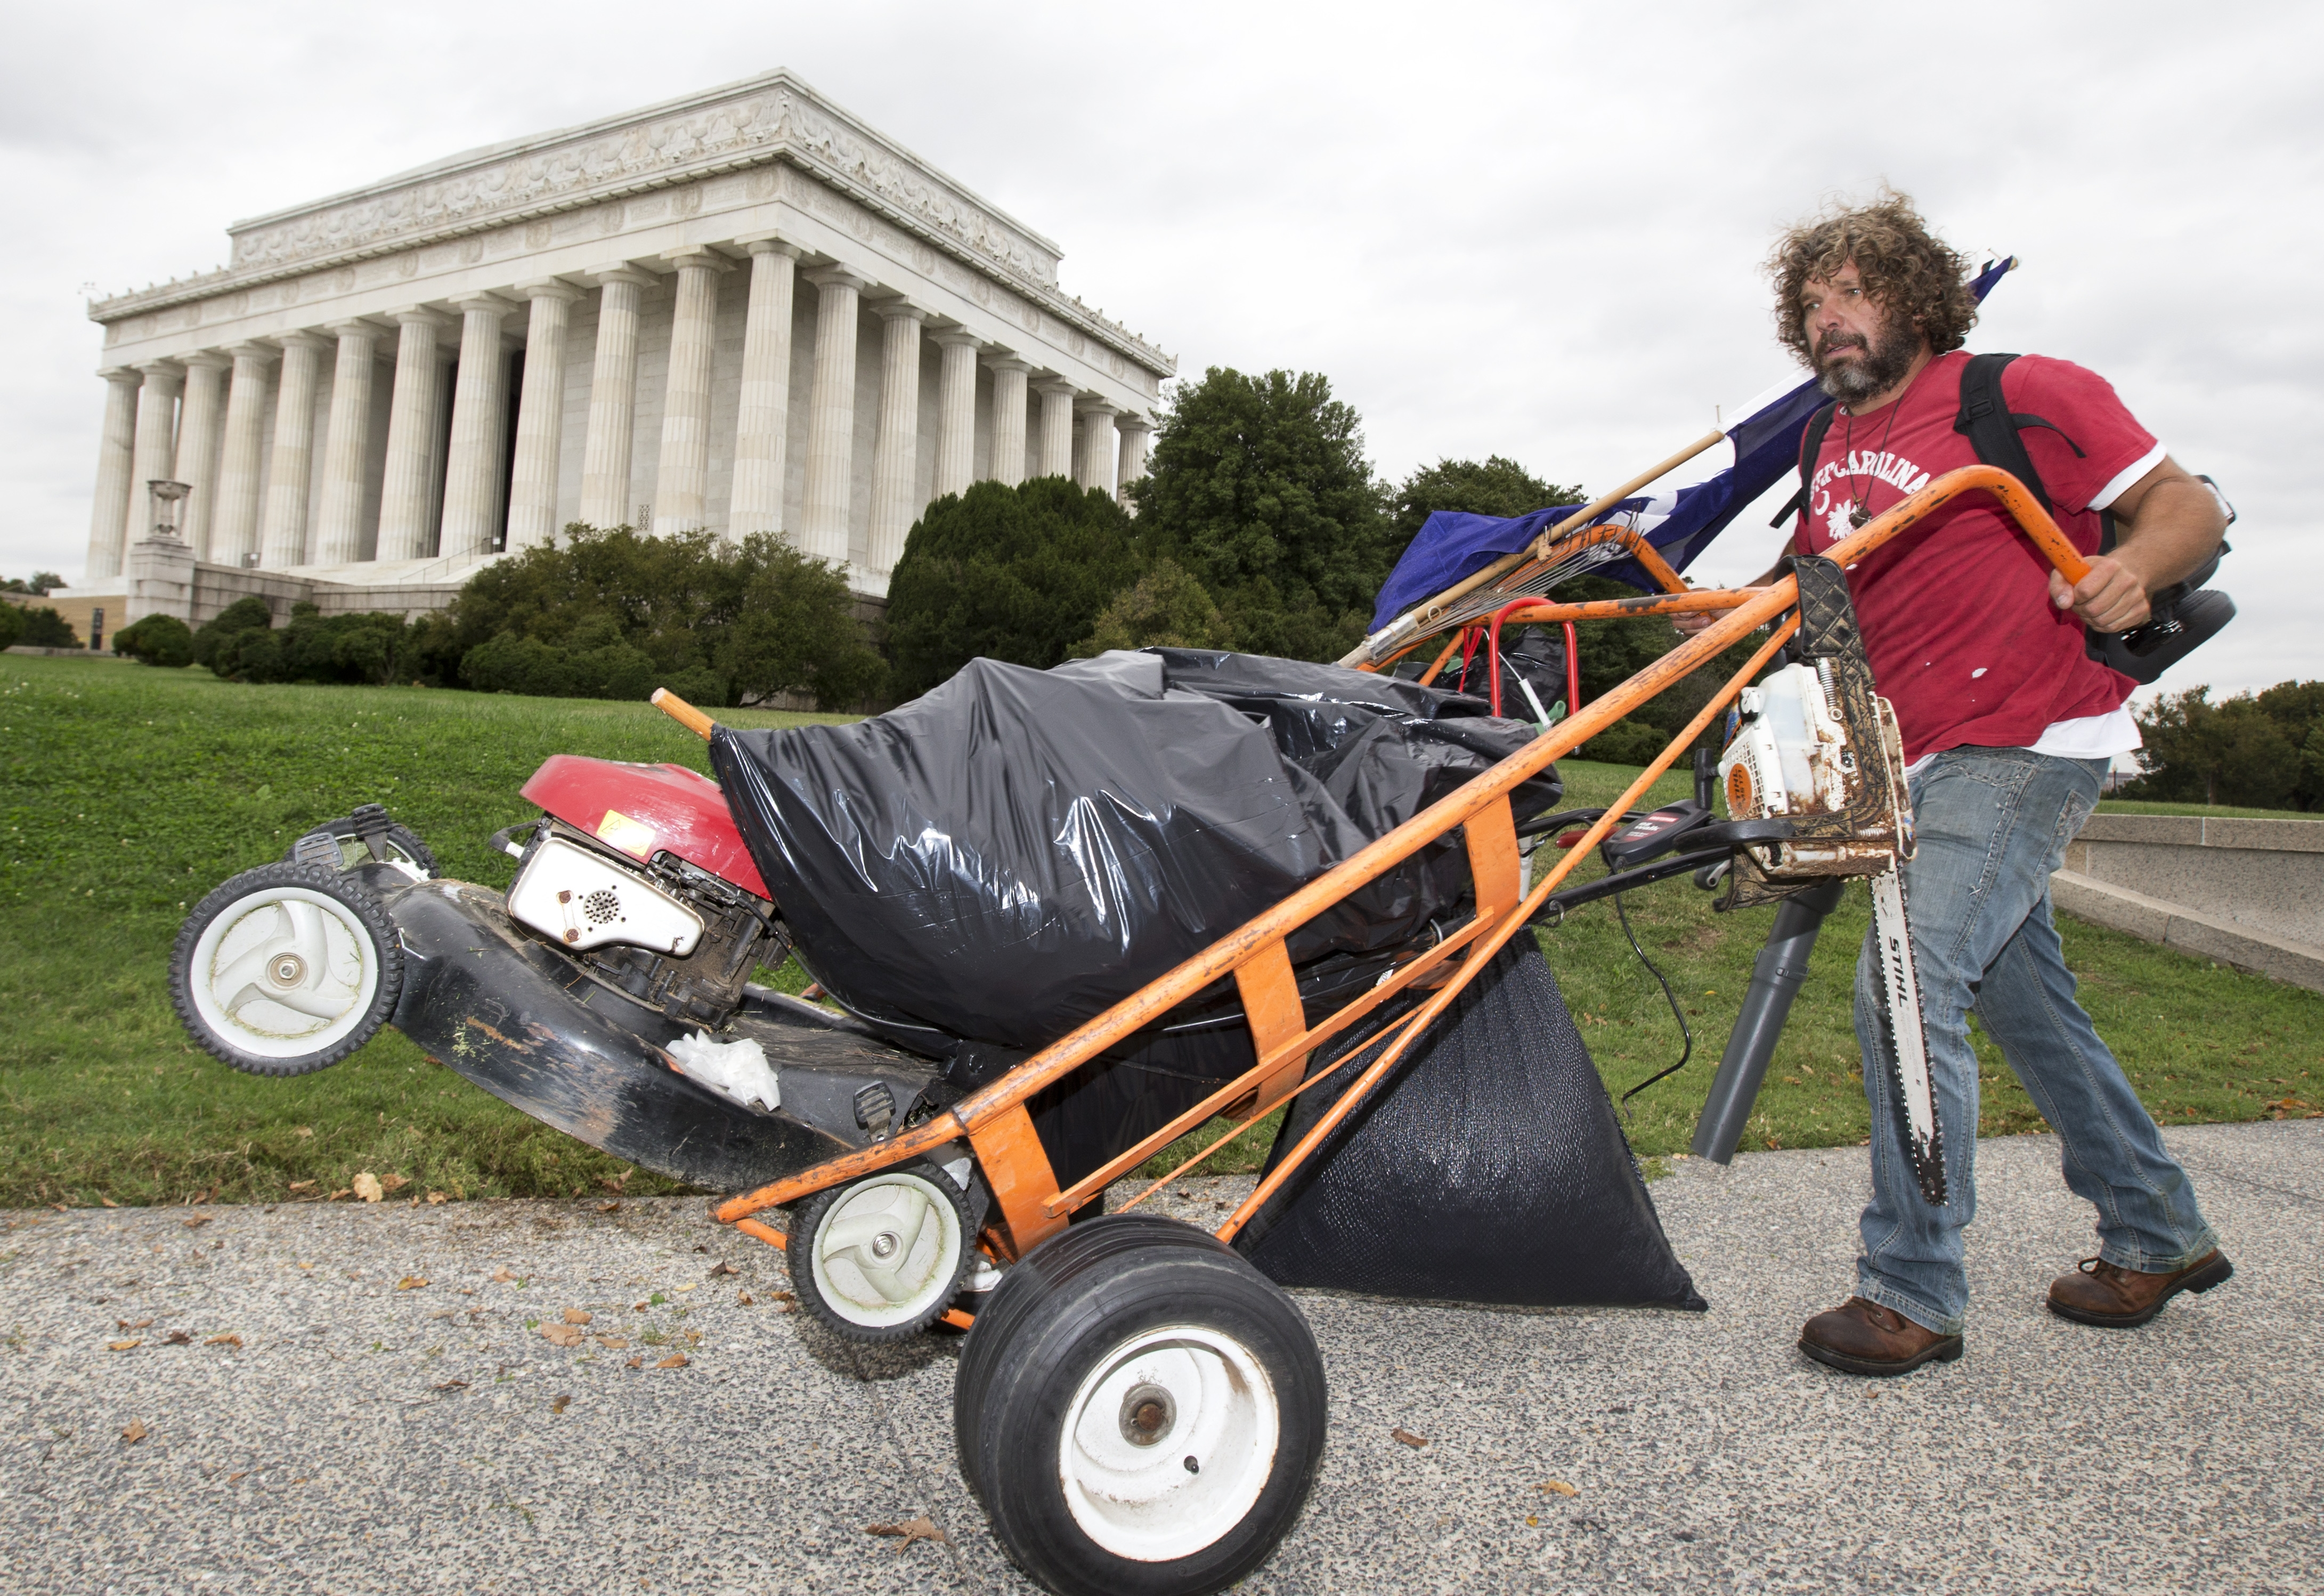 Chris Cox of Mount Pleasant, S.C., pushes a cart near the Lincoln Memorial on Wednesday.  Cox has taken it upon himself to clean up the grounds around the Lincoln Memorial during the government shutdown.